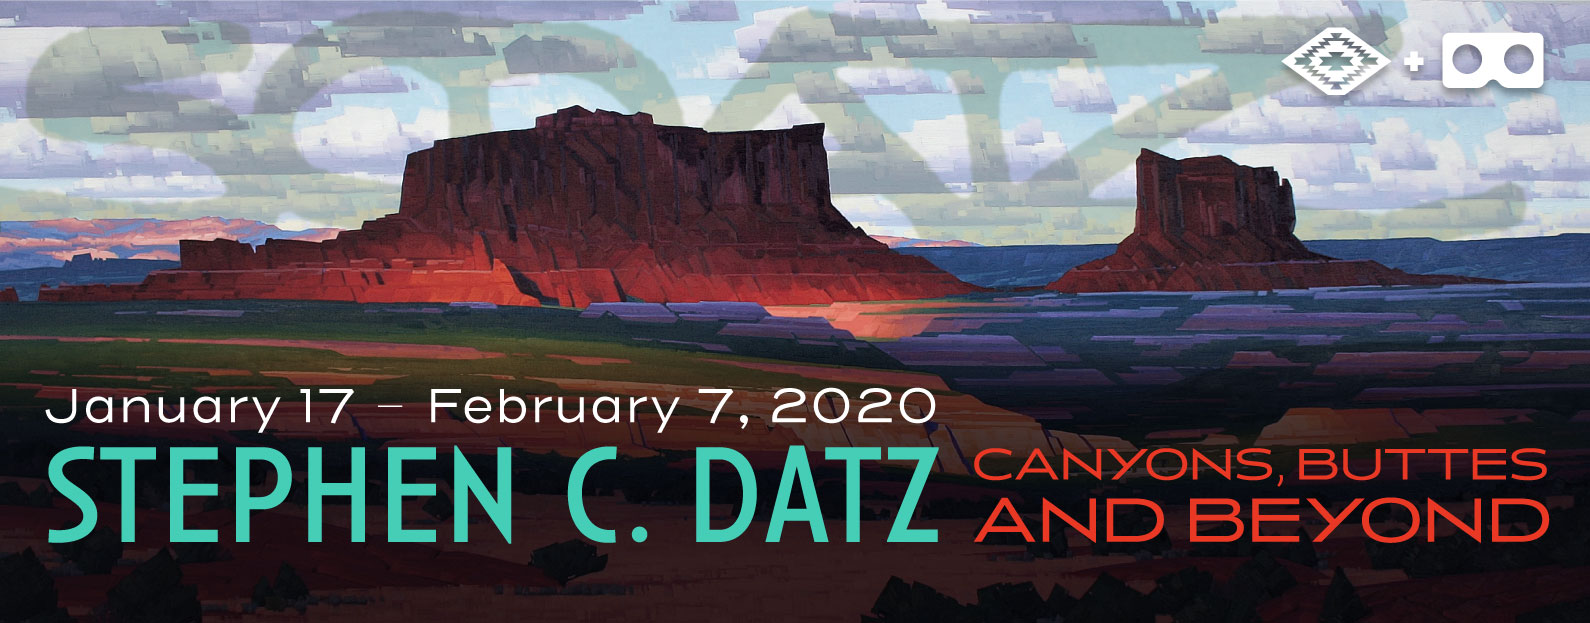 Stephen C. Datz Canyons Buttes and Beyond January 17 to February 7, 2020